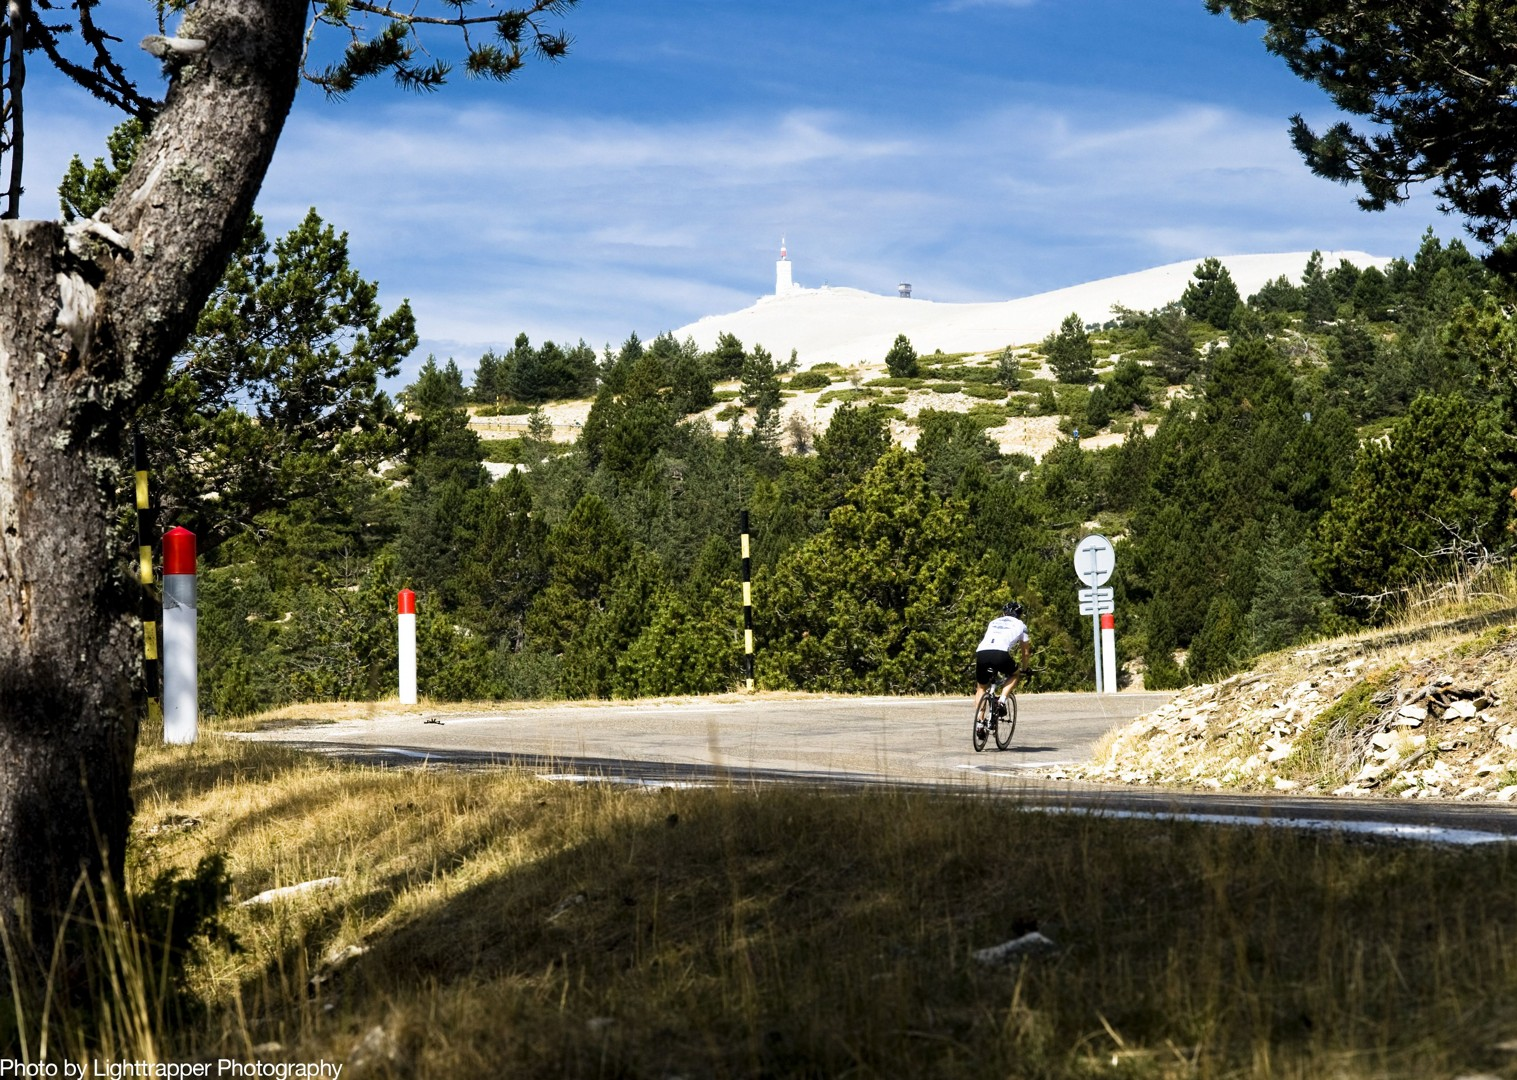 le-ventoux-a-velo-guided-road-cycling-trip.jpg - France - Provence - Le Ventoux a Velo - Guided Road Cycling Holiday - Road Cycling